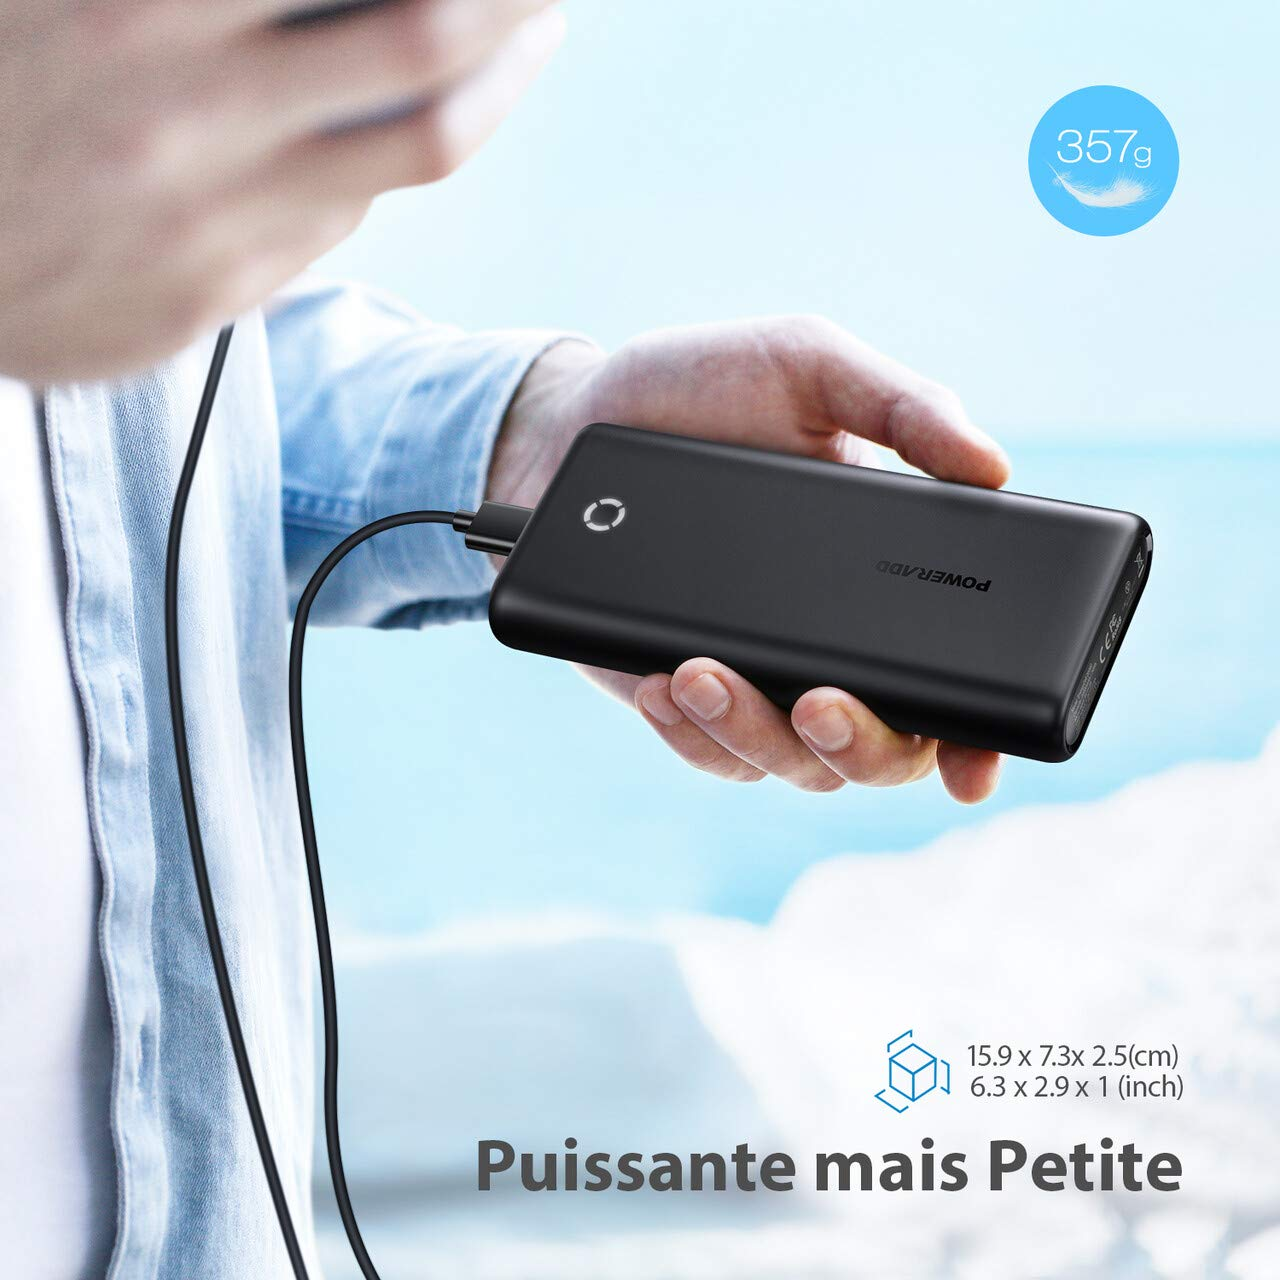 POWERADD Batterie Externe 20000mAh - EnergyCell Grande Capacité mais Mini Power Bank 2 Port Sorties avec 3 en 1 Câble pour Huawei, iPhone, iPad, Samsung, Wiko, Nexus, Xiaomi, Tablette PC etc.